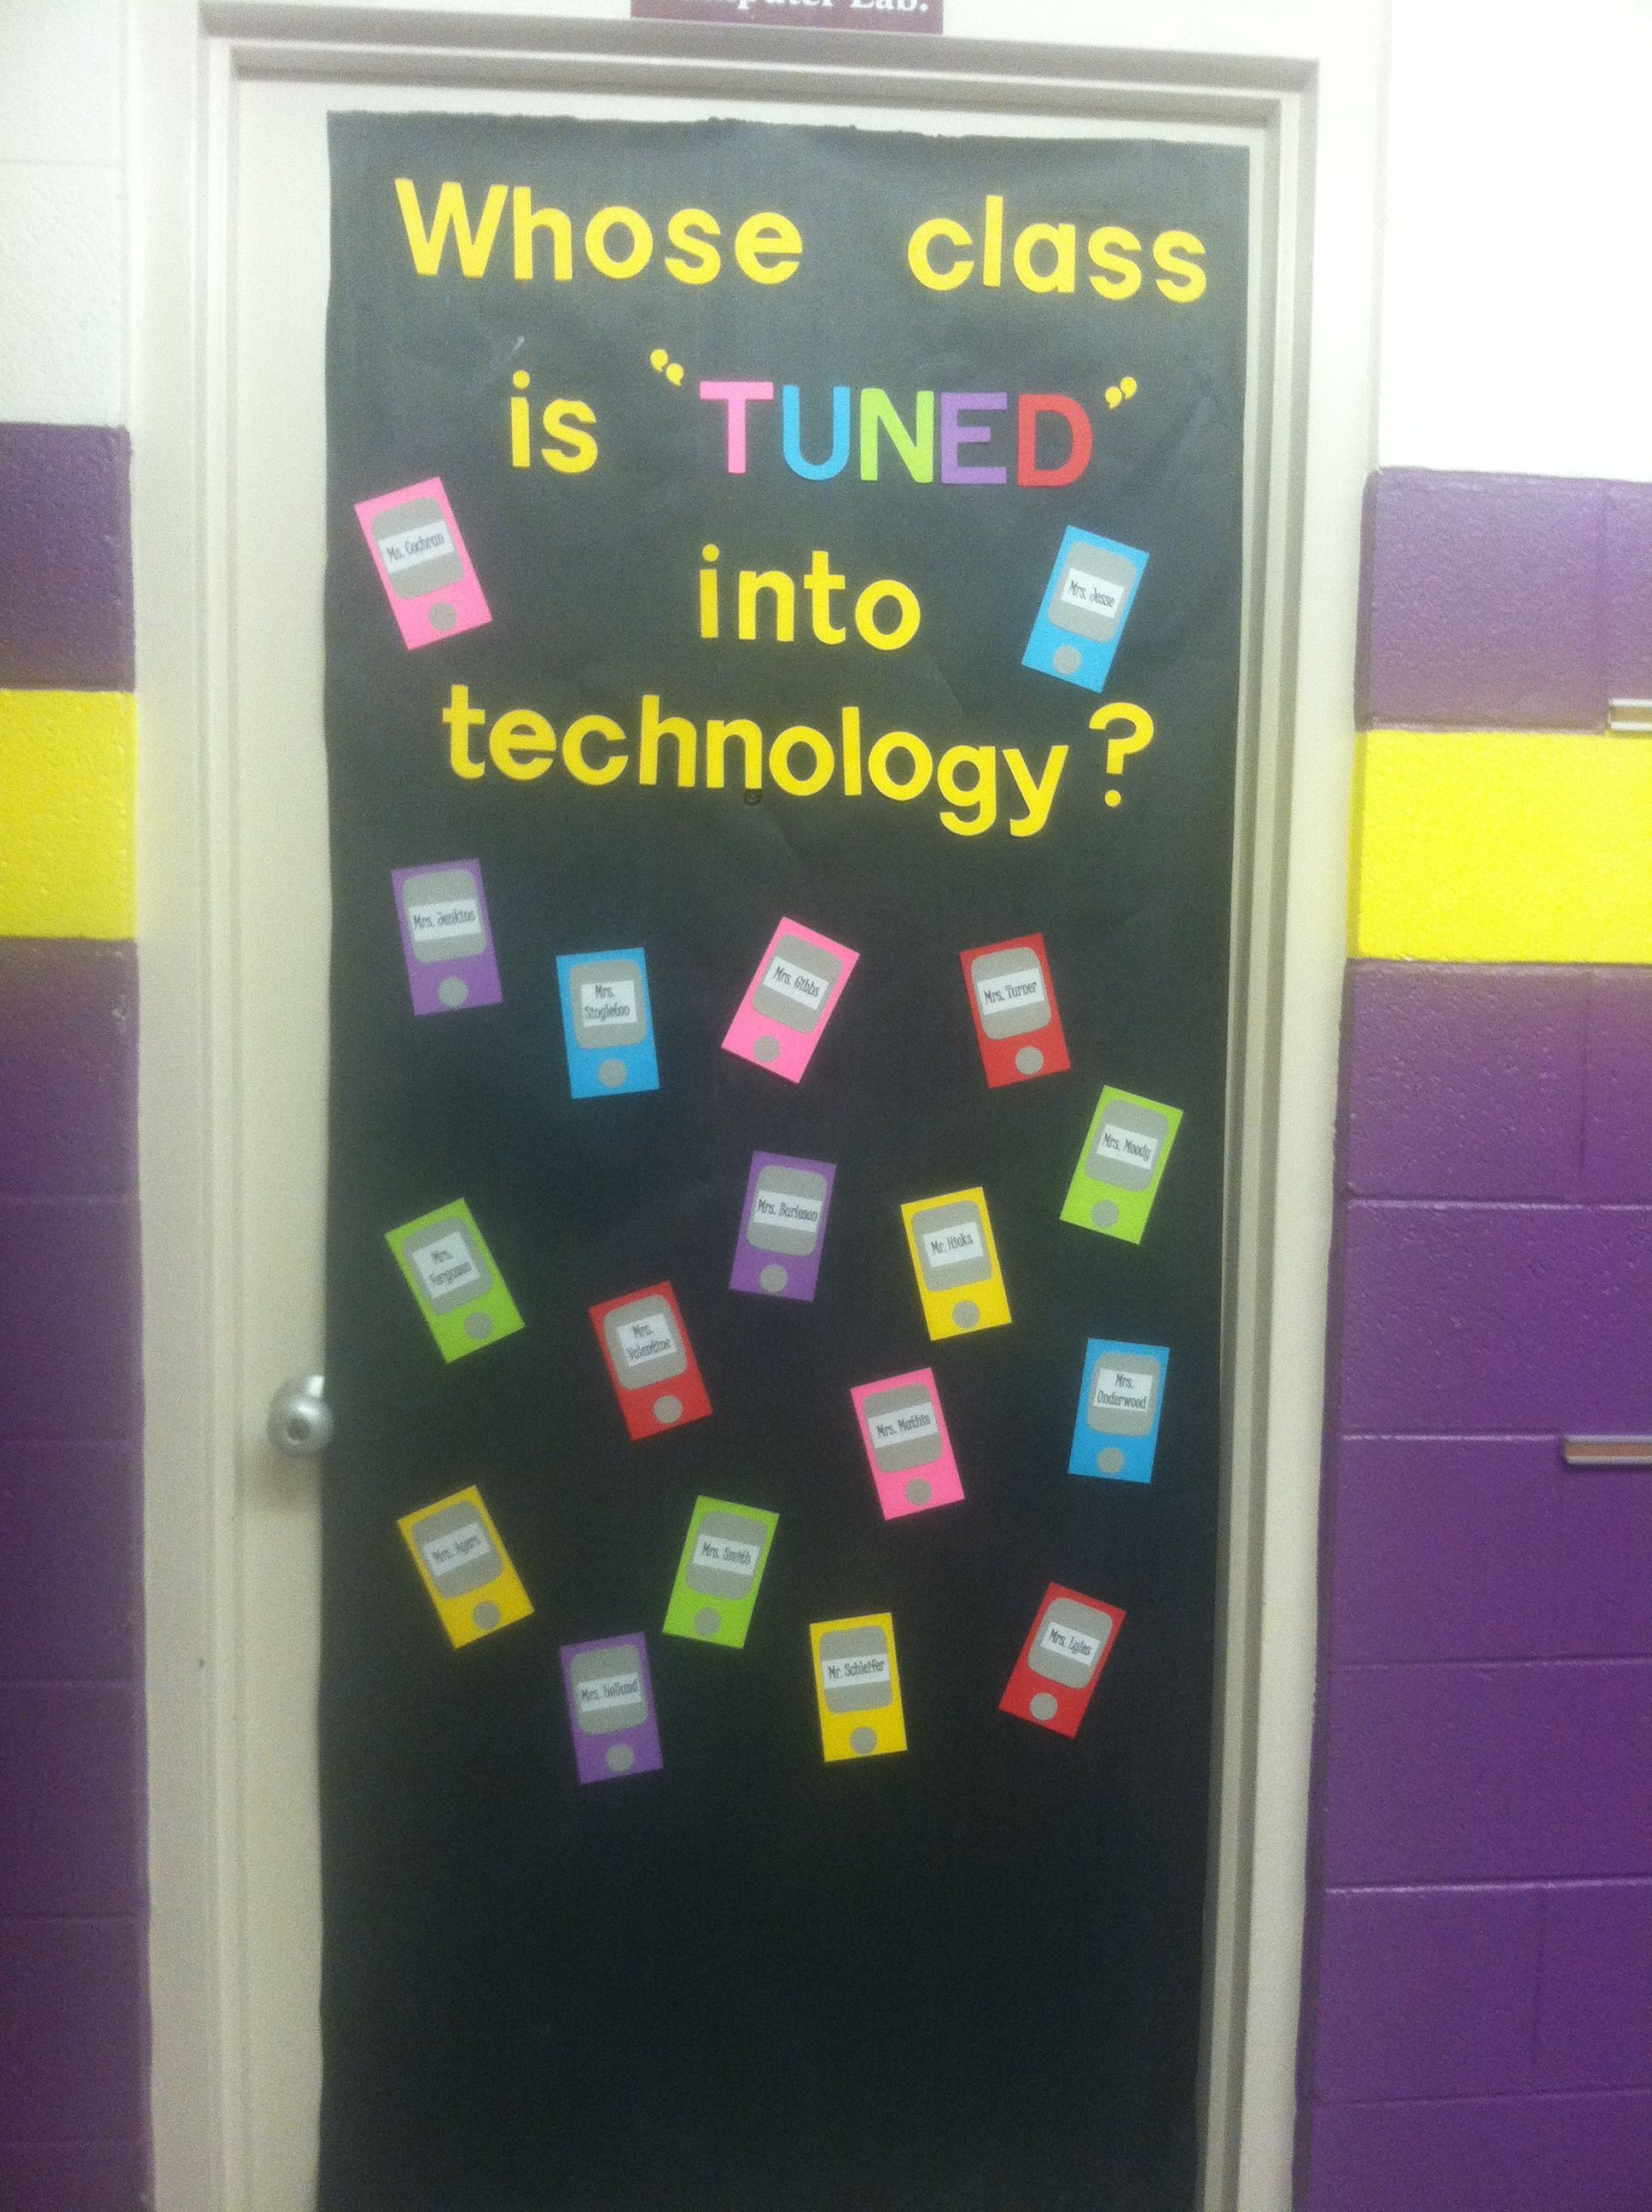 This Is A Cute Way To Include All The Classrooms In The